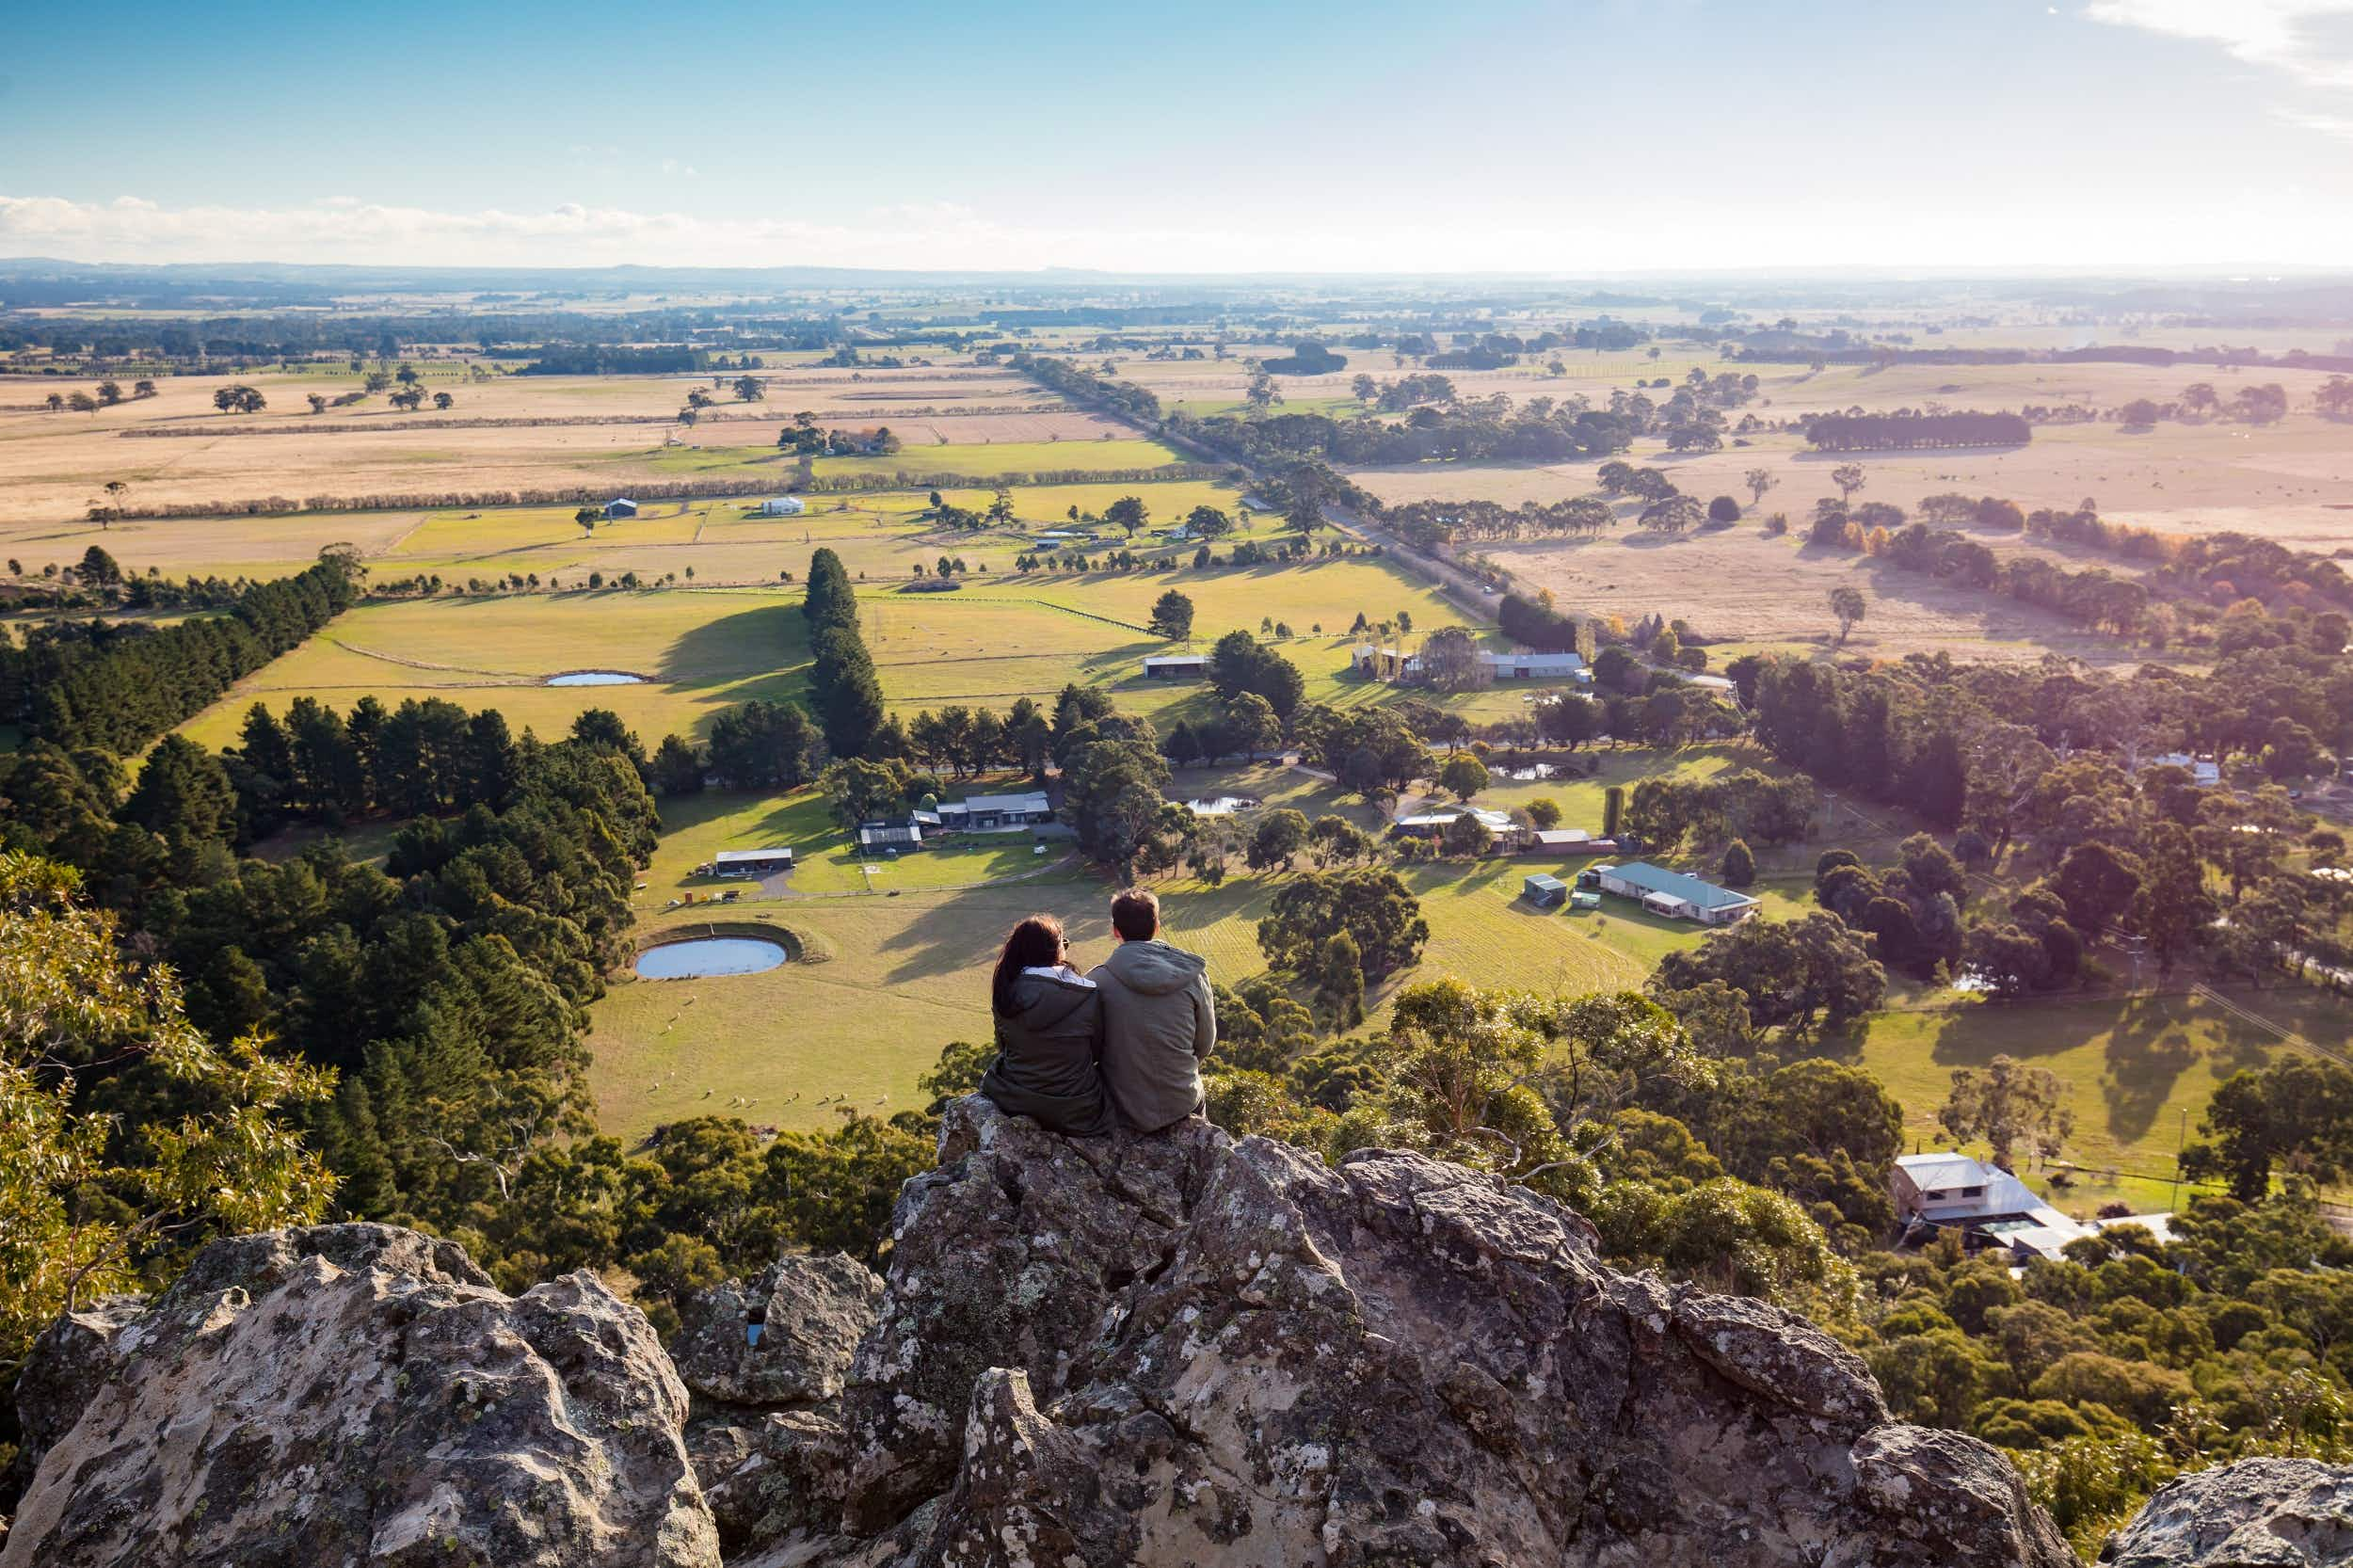 Drone photography in Australia: what you need to know